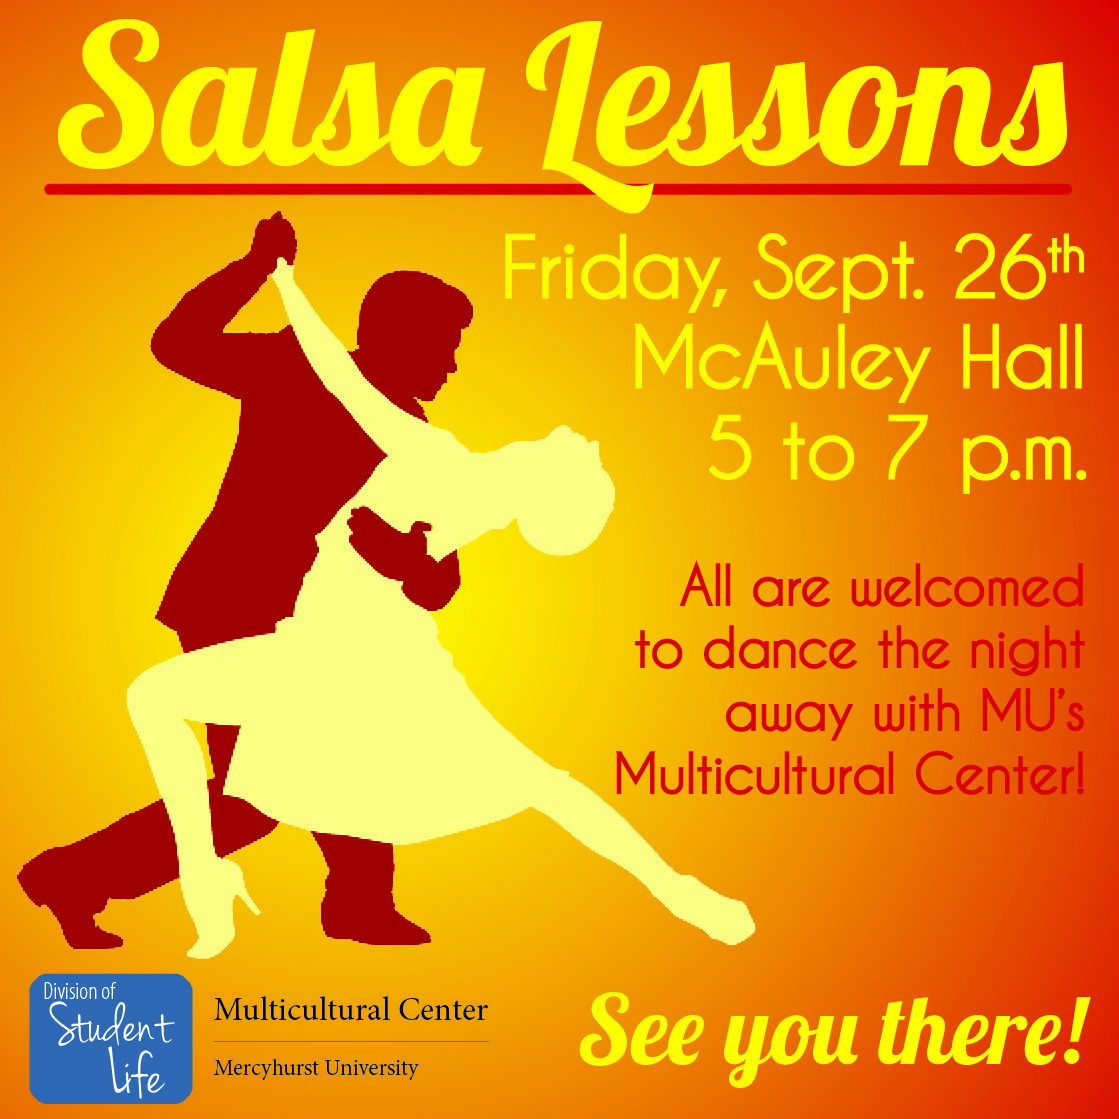 FREE salsa lessons from Mercyhurst's Multicultural Center in honor of National Hispanic Heritage Month